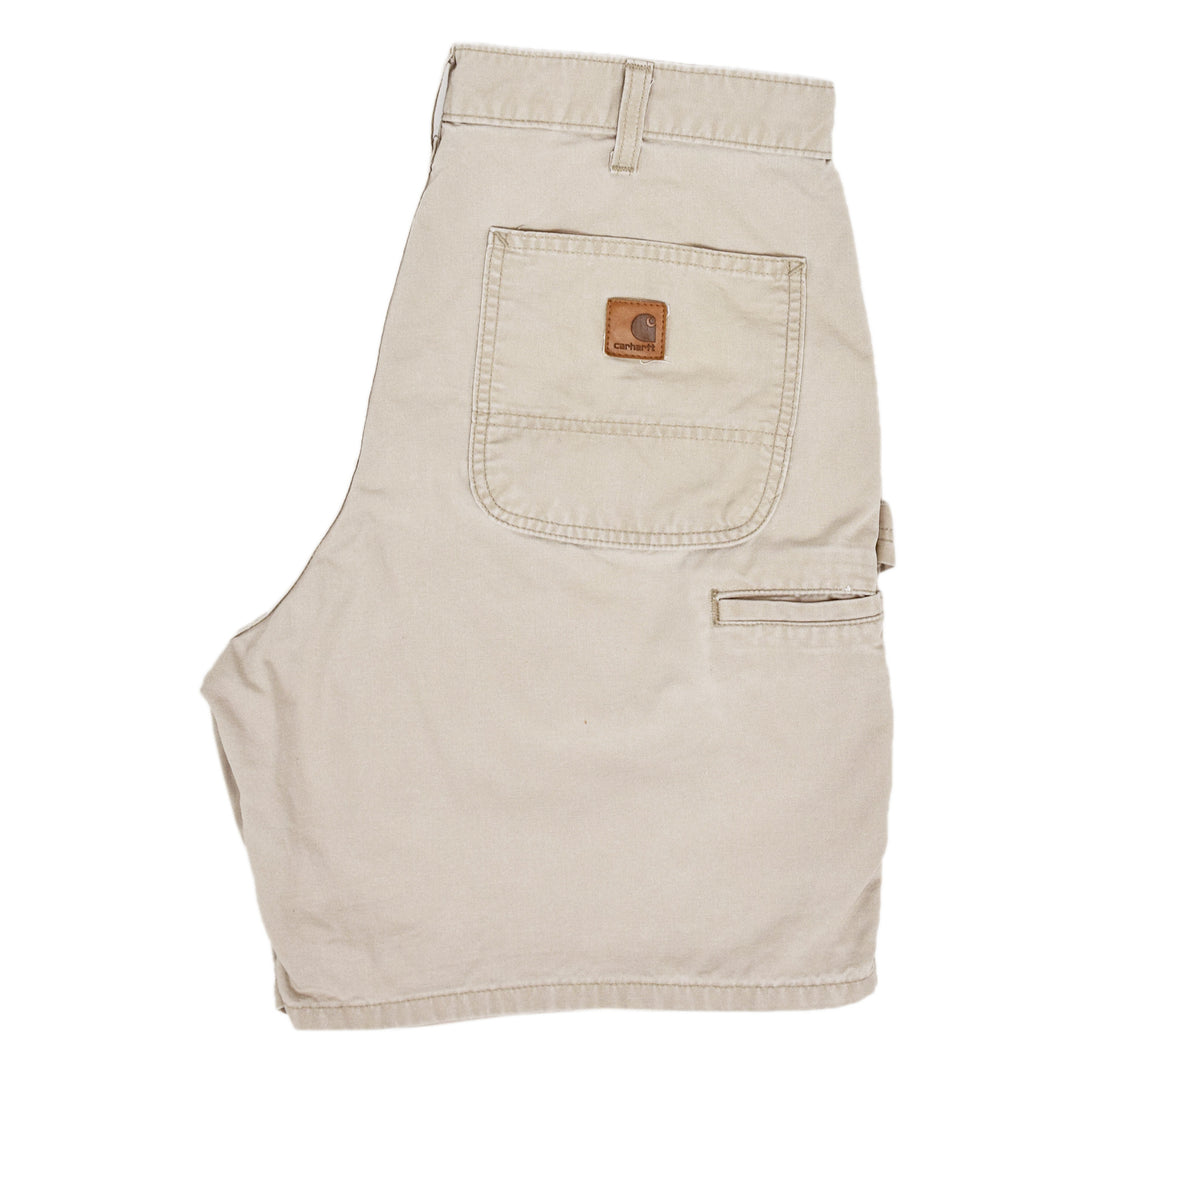 Vintage Carhartt Stone Cotton Canvas Utility Work Shorts 32 W back